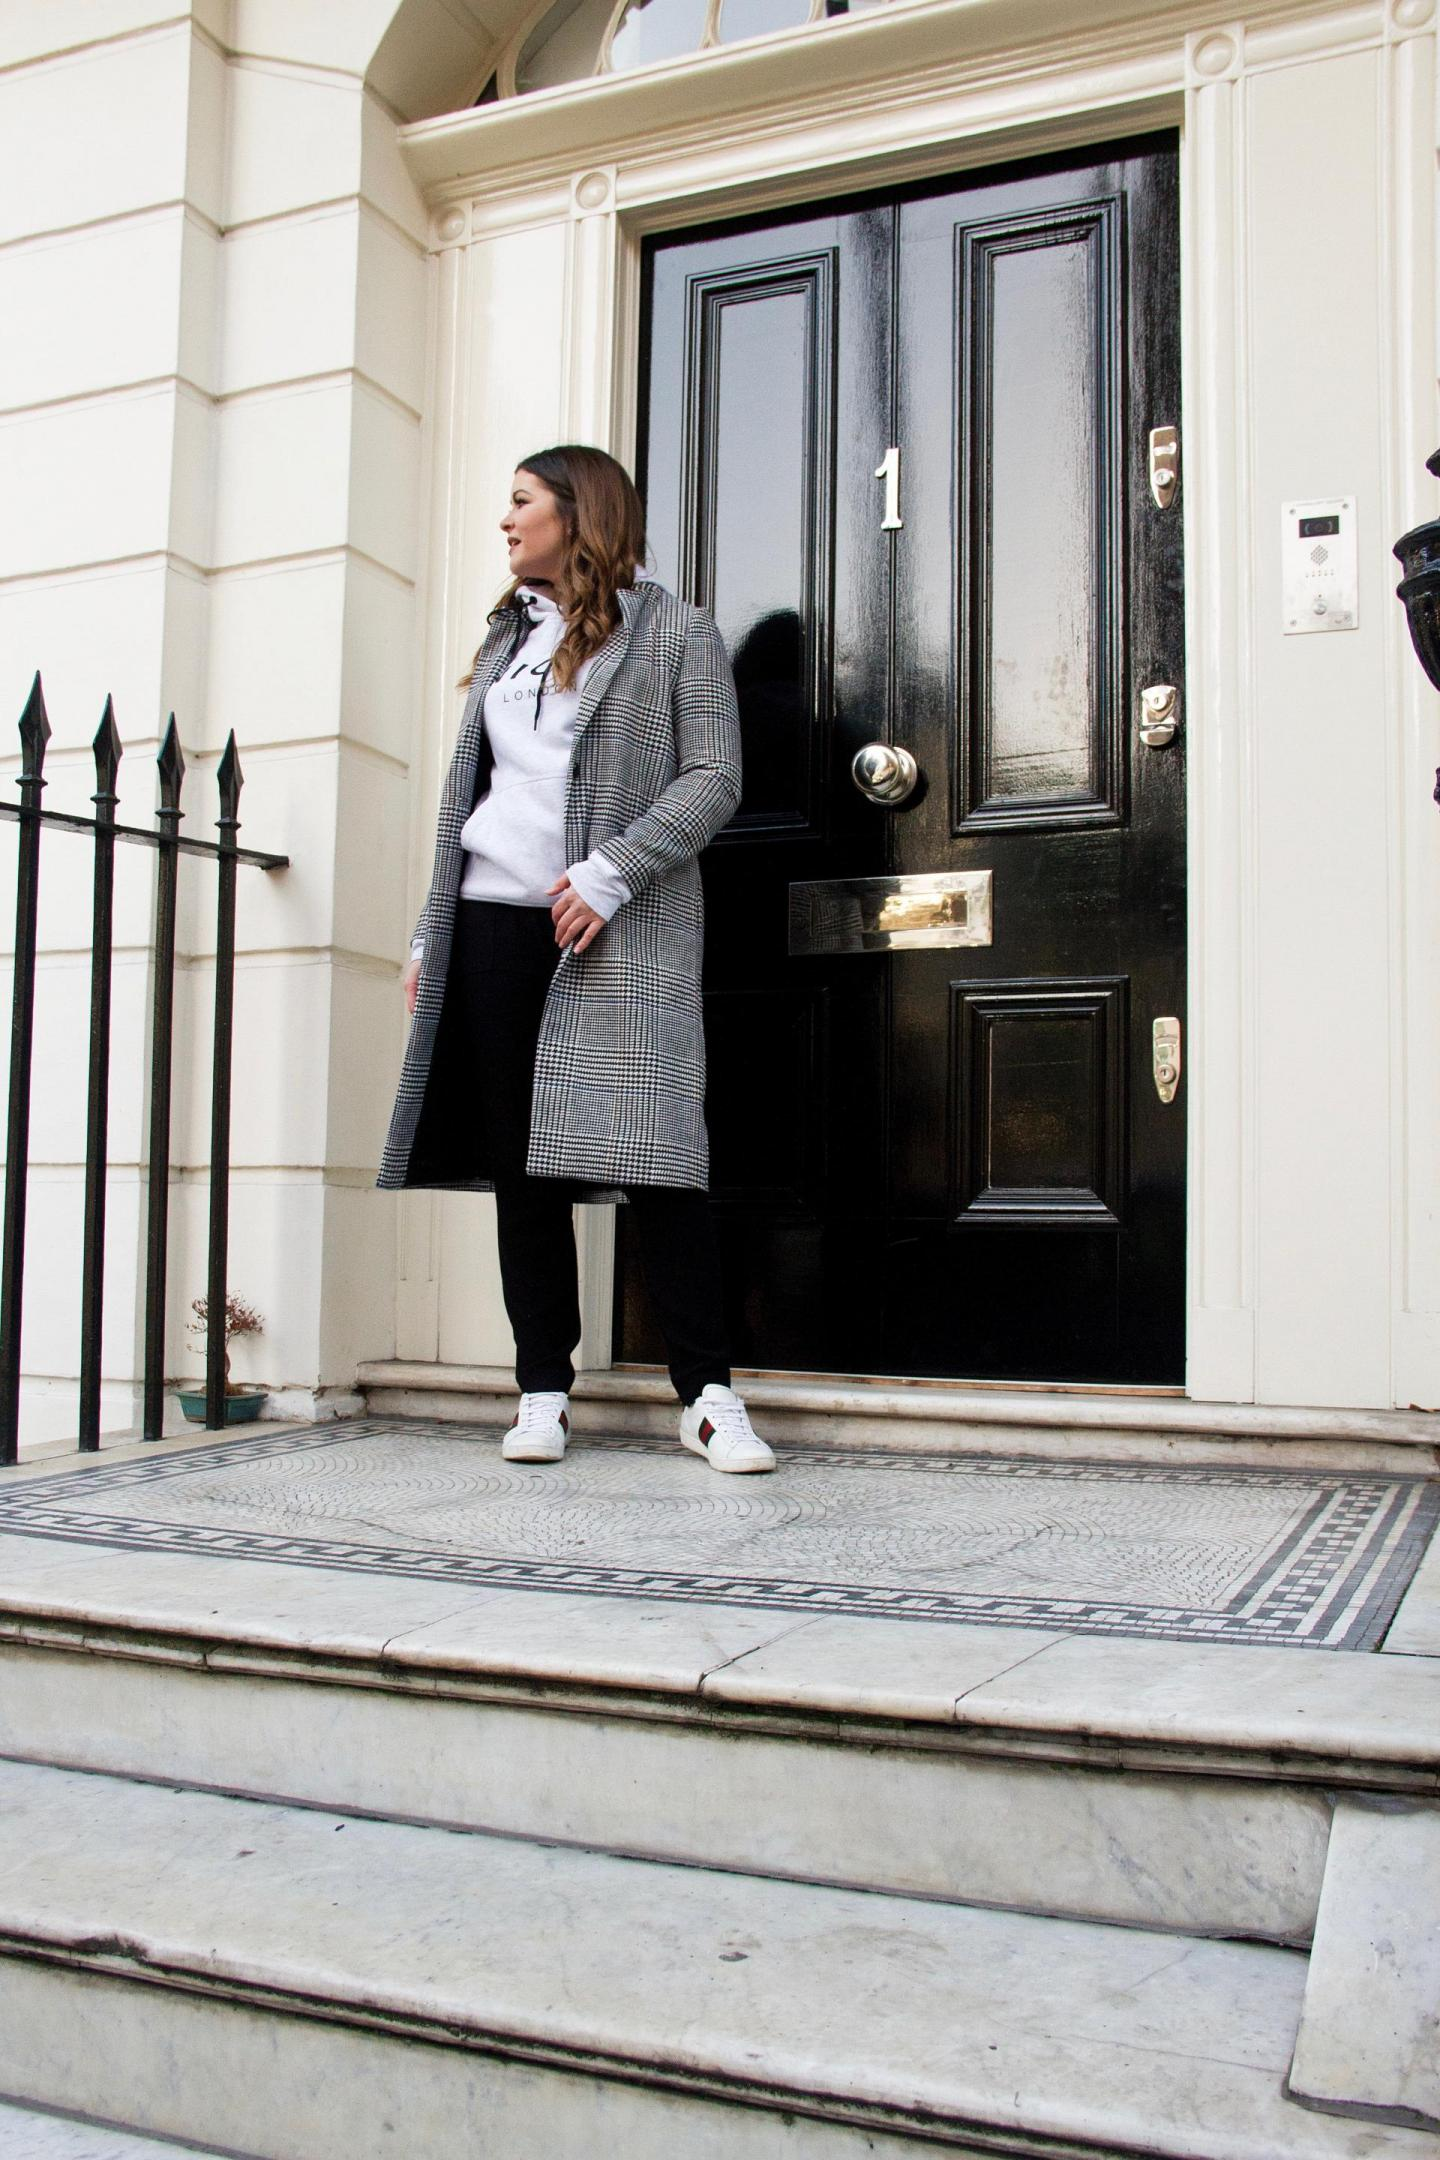 Monochrome London Street Style With Nicce